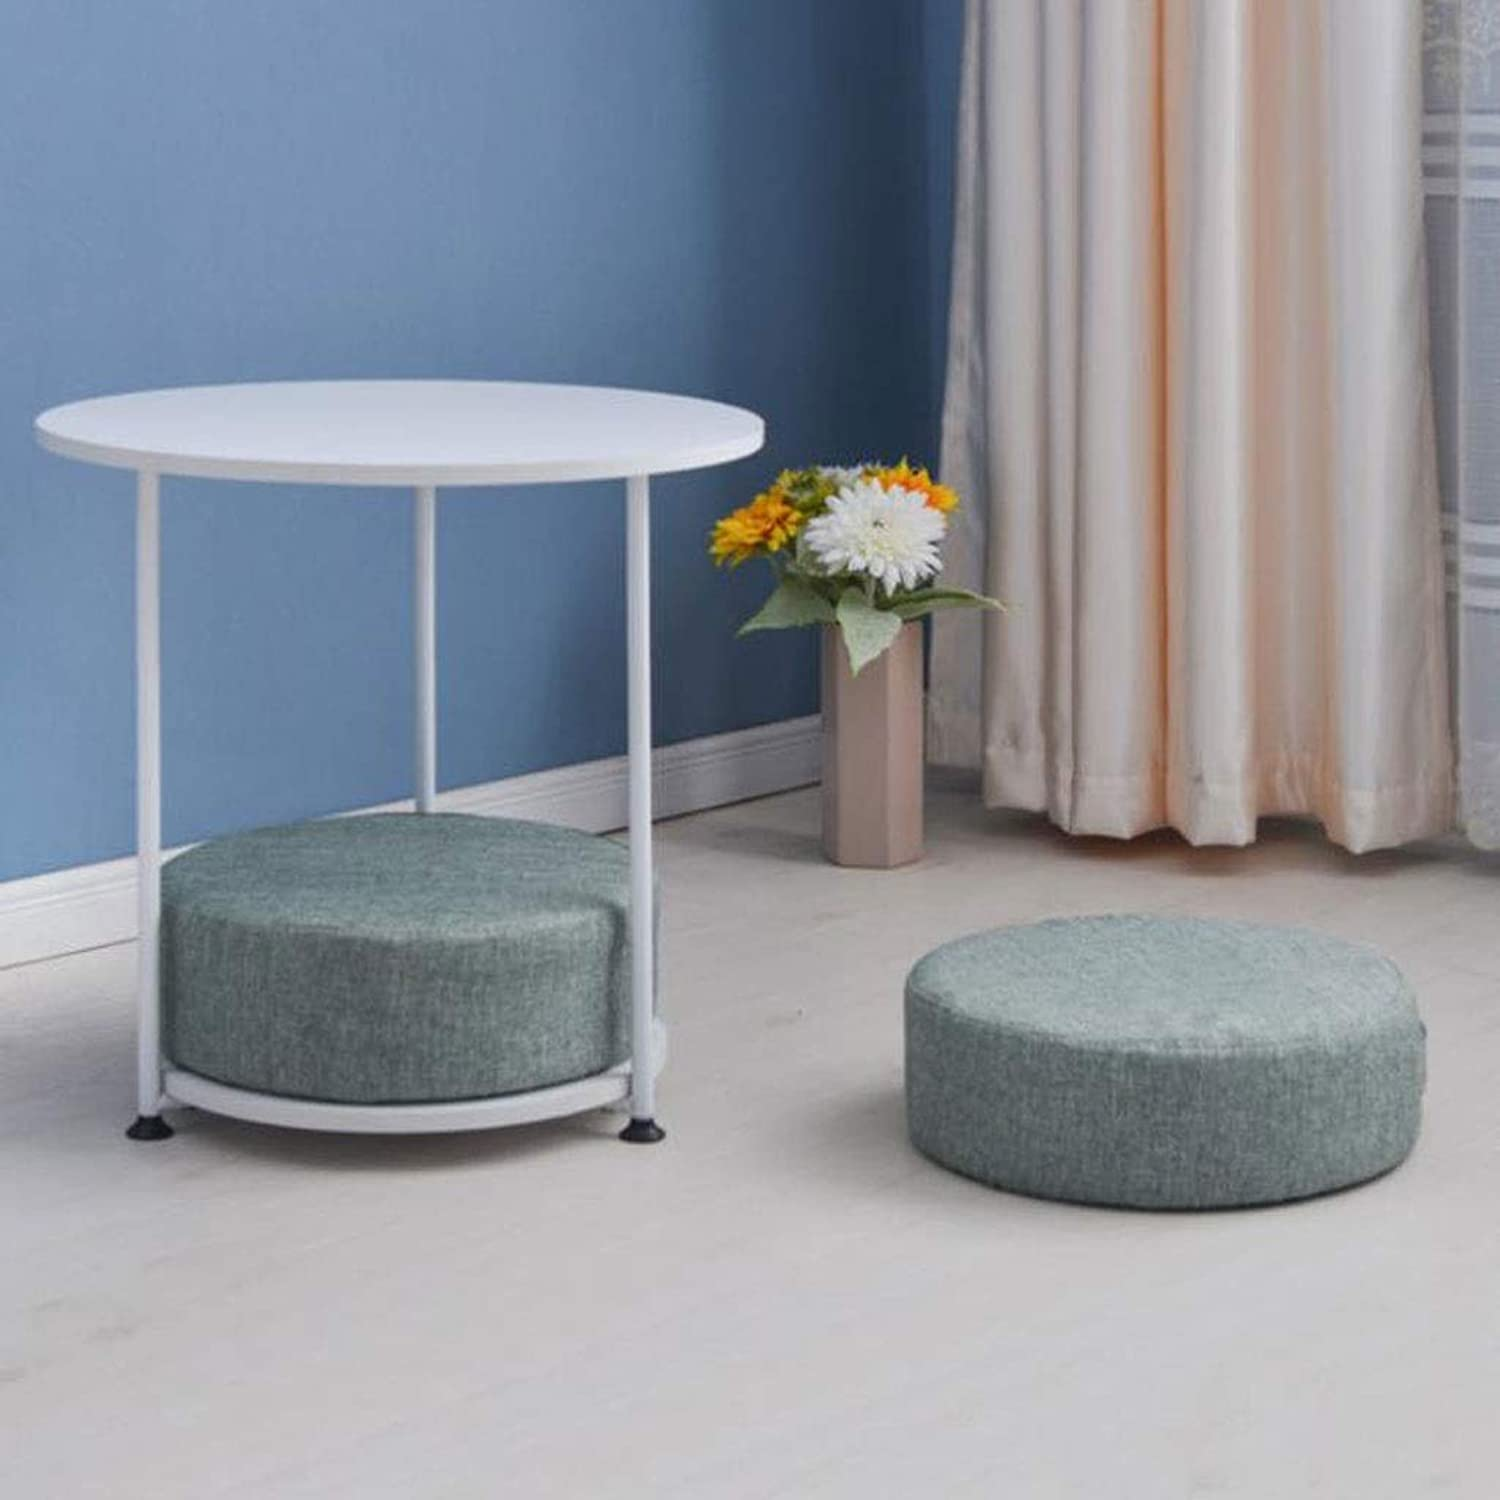 End Table, Small Modern Metal End Table Side Table Coffee Table, Easy to Assemble Round Table Top (color   B)